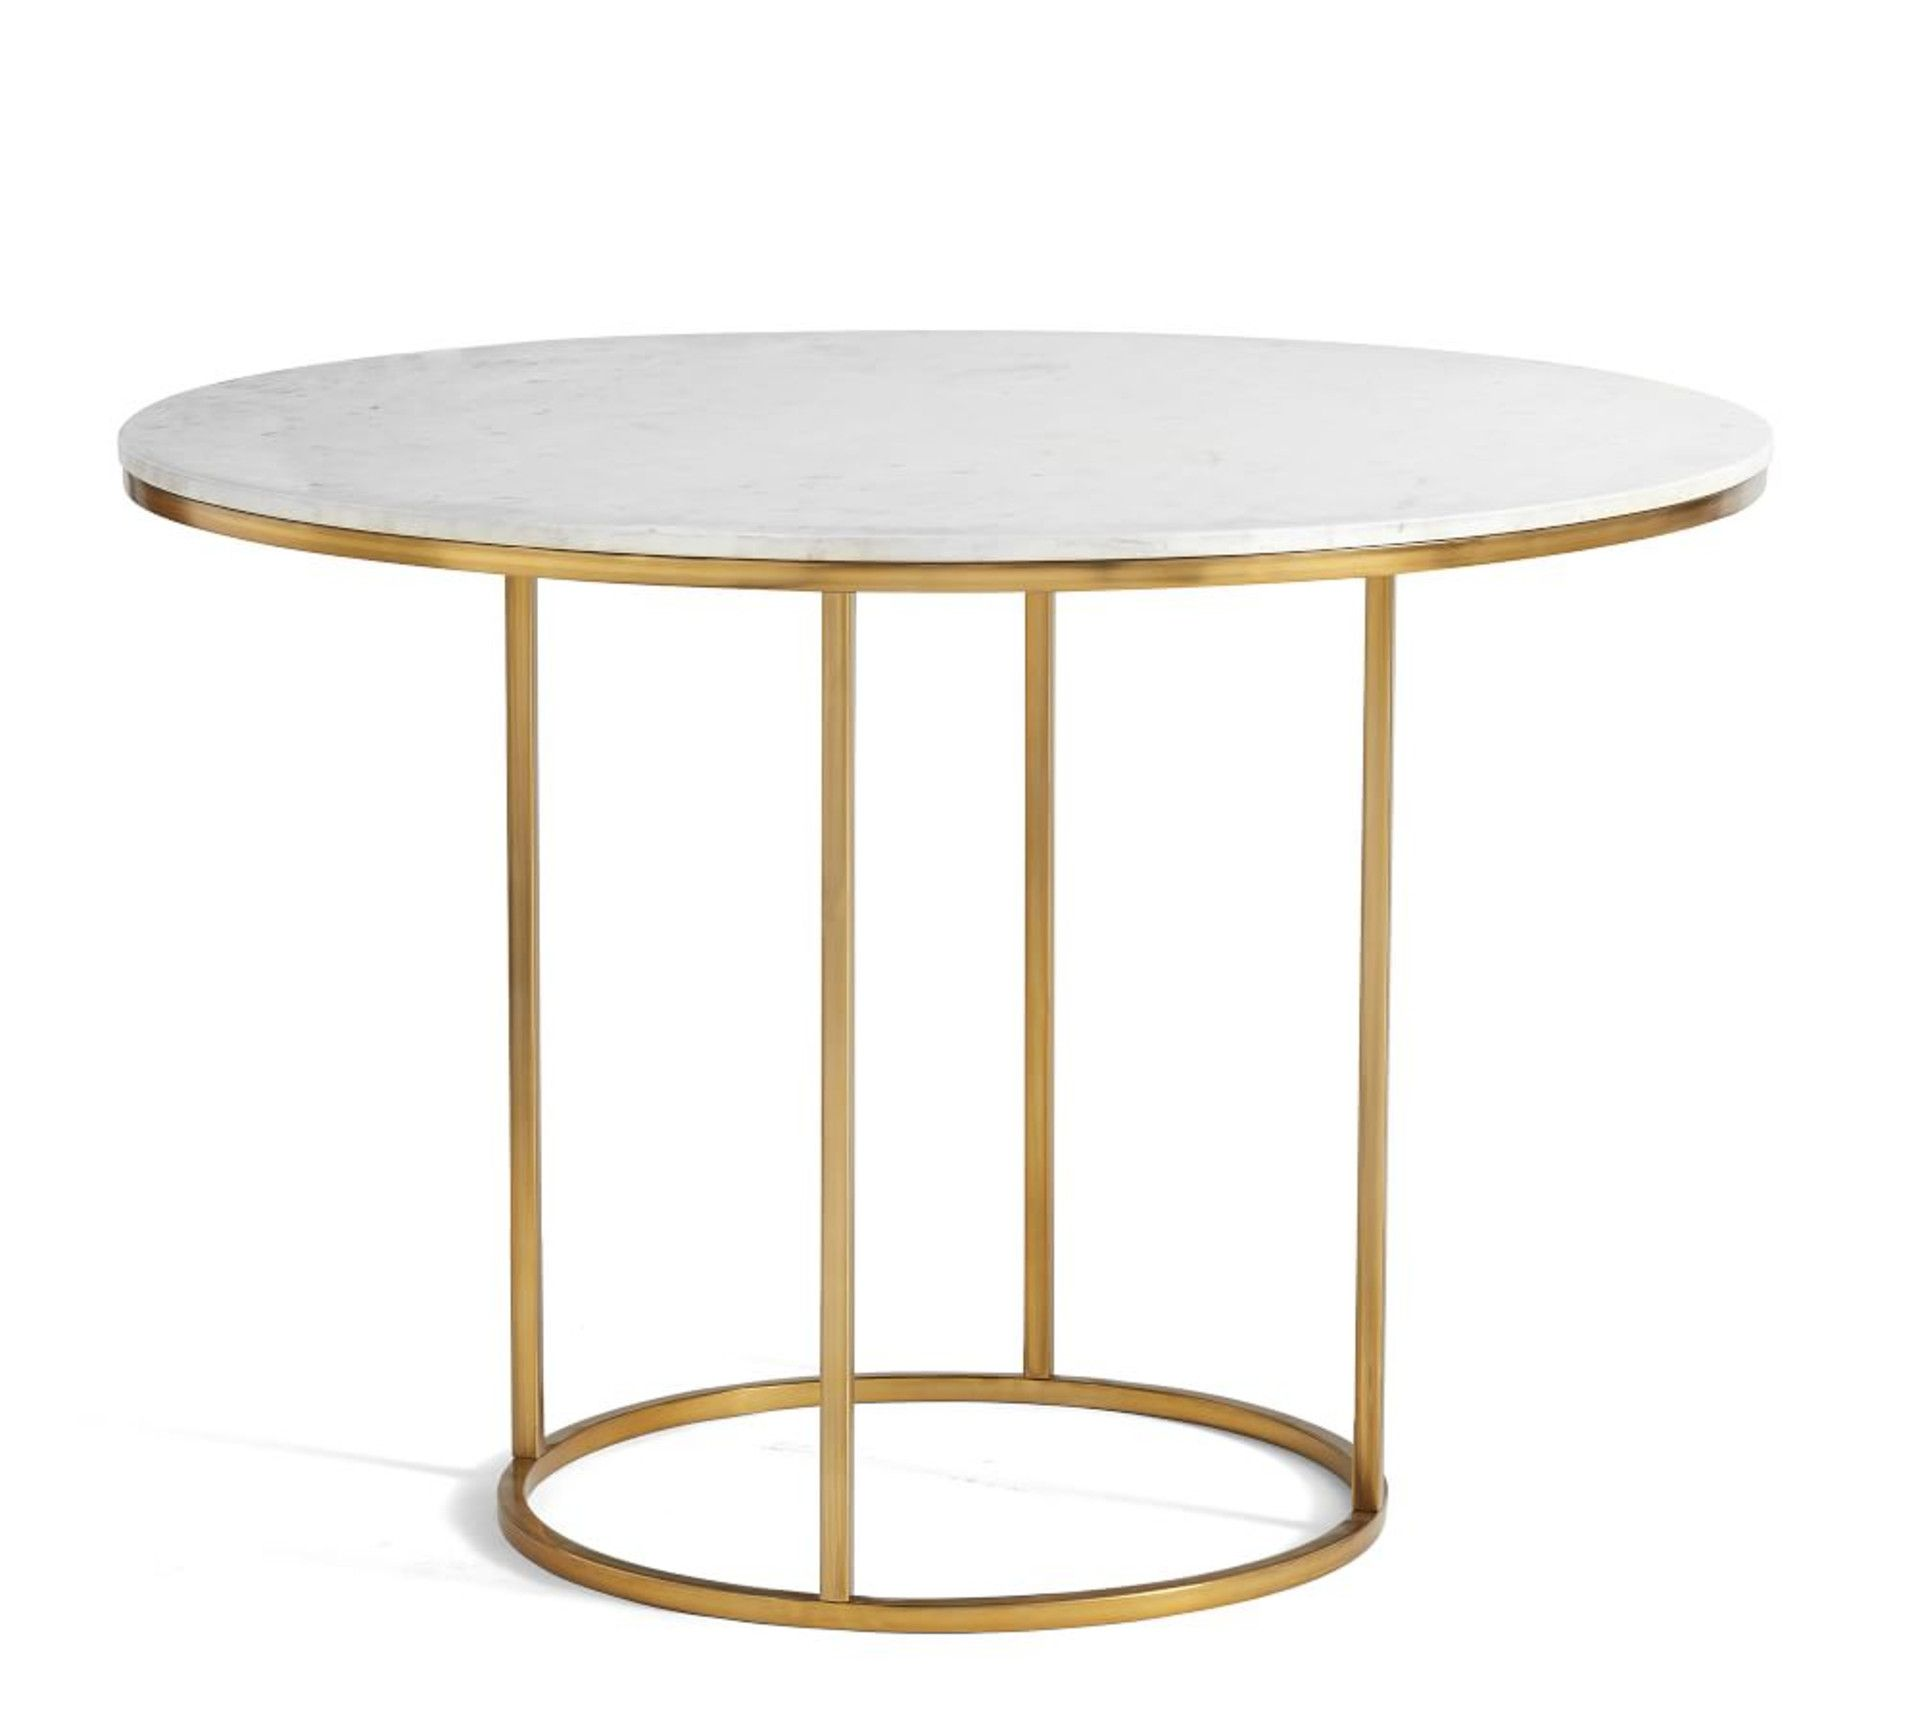 Delaney Round Marble Pedestal Dining Table Marble Pedestal Dining Table Marble Dining Pedestal Dining Table [ 1728 x 1920 Pixel ]